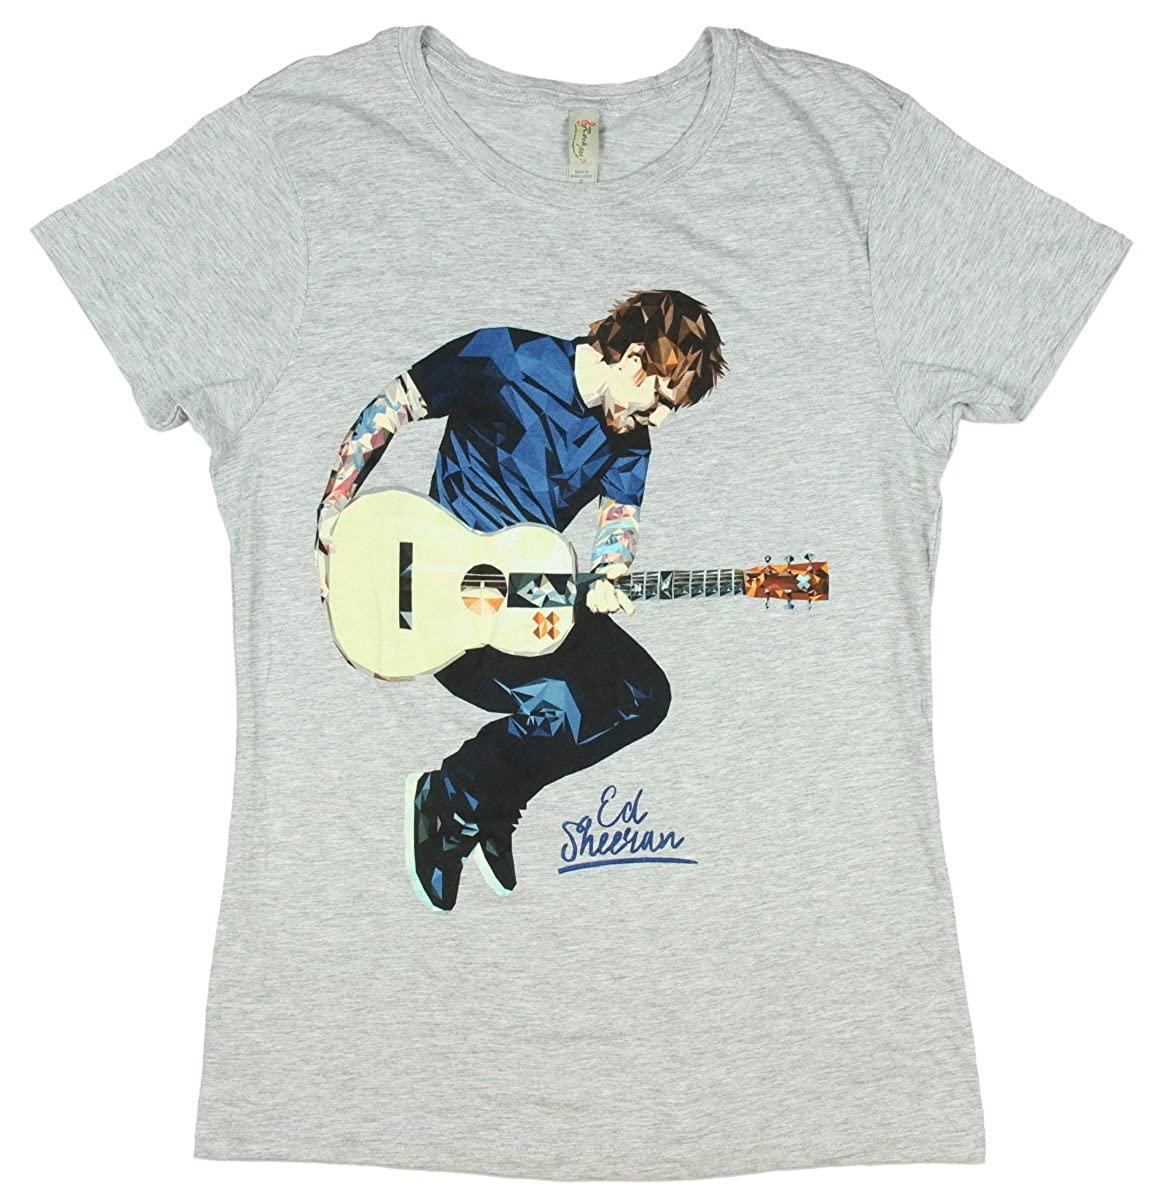 Amazon.com: Ed Sheeran Geometric Girls T-Shirt: Clothing